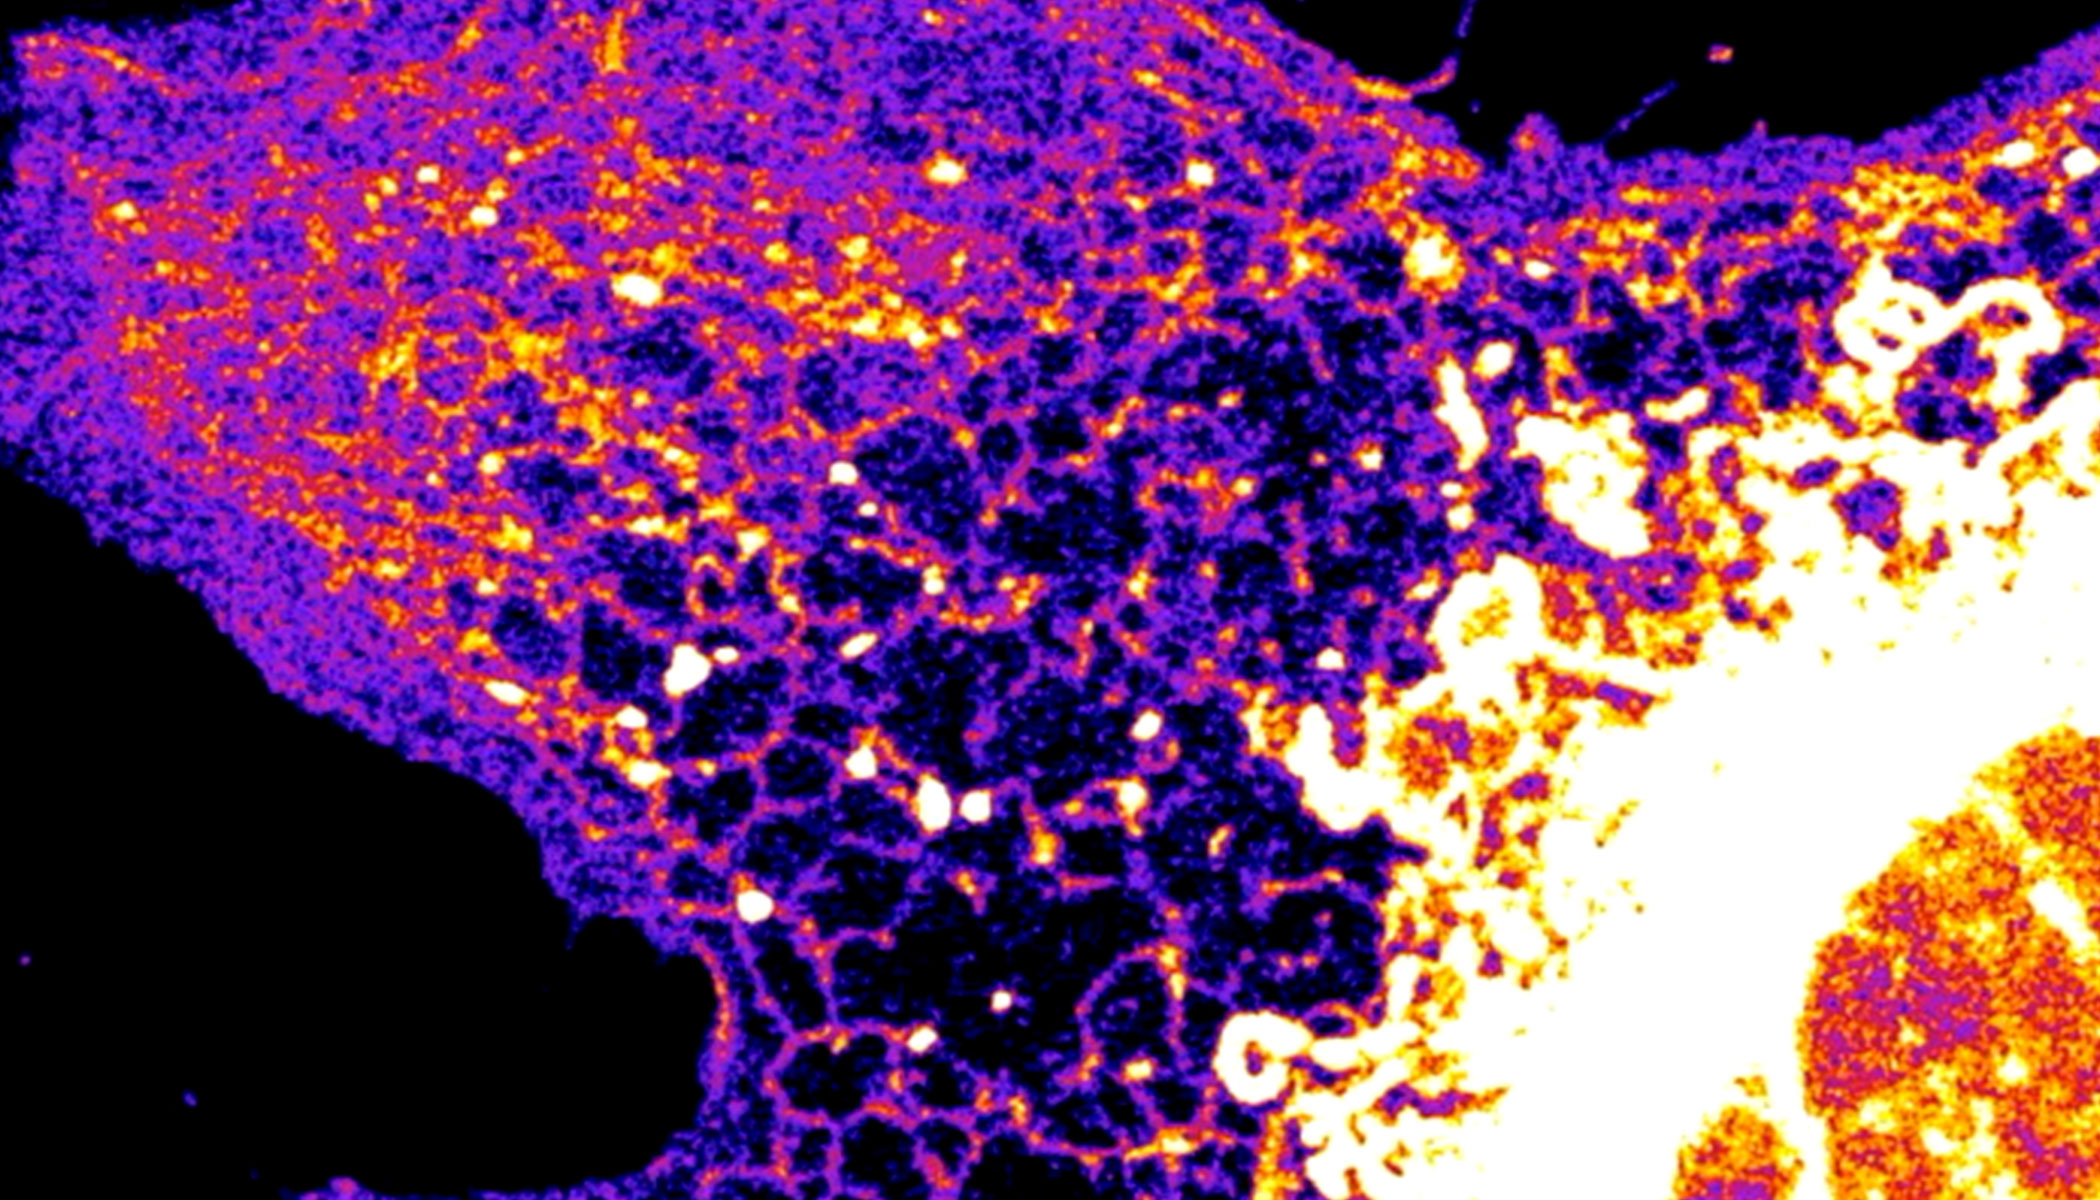 A purple and pink fibroblast cell is displayed against a black background.